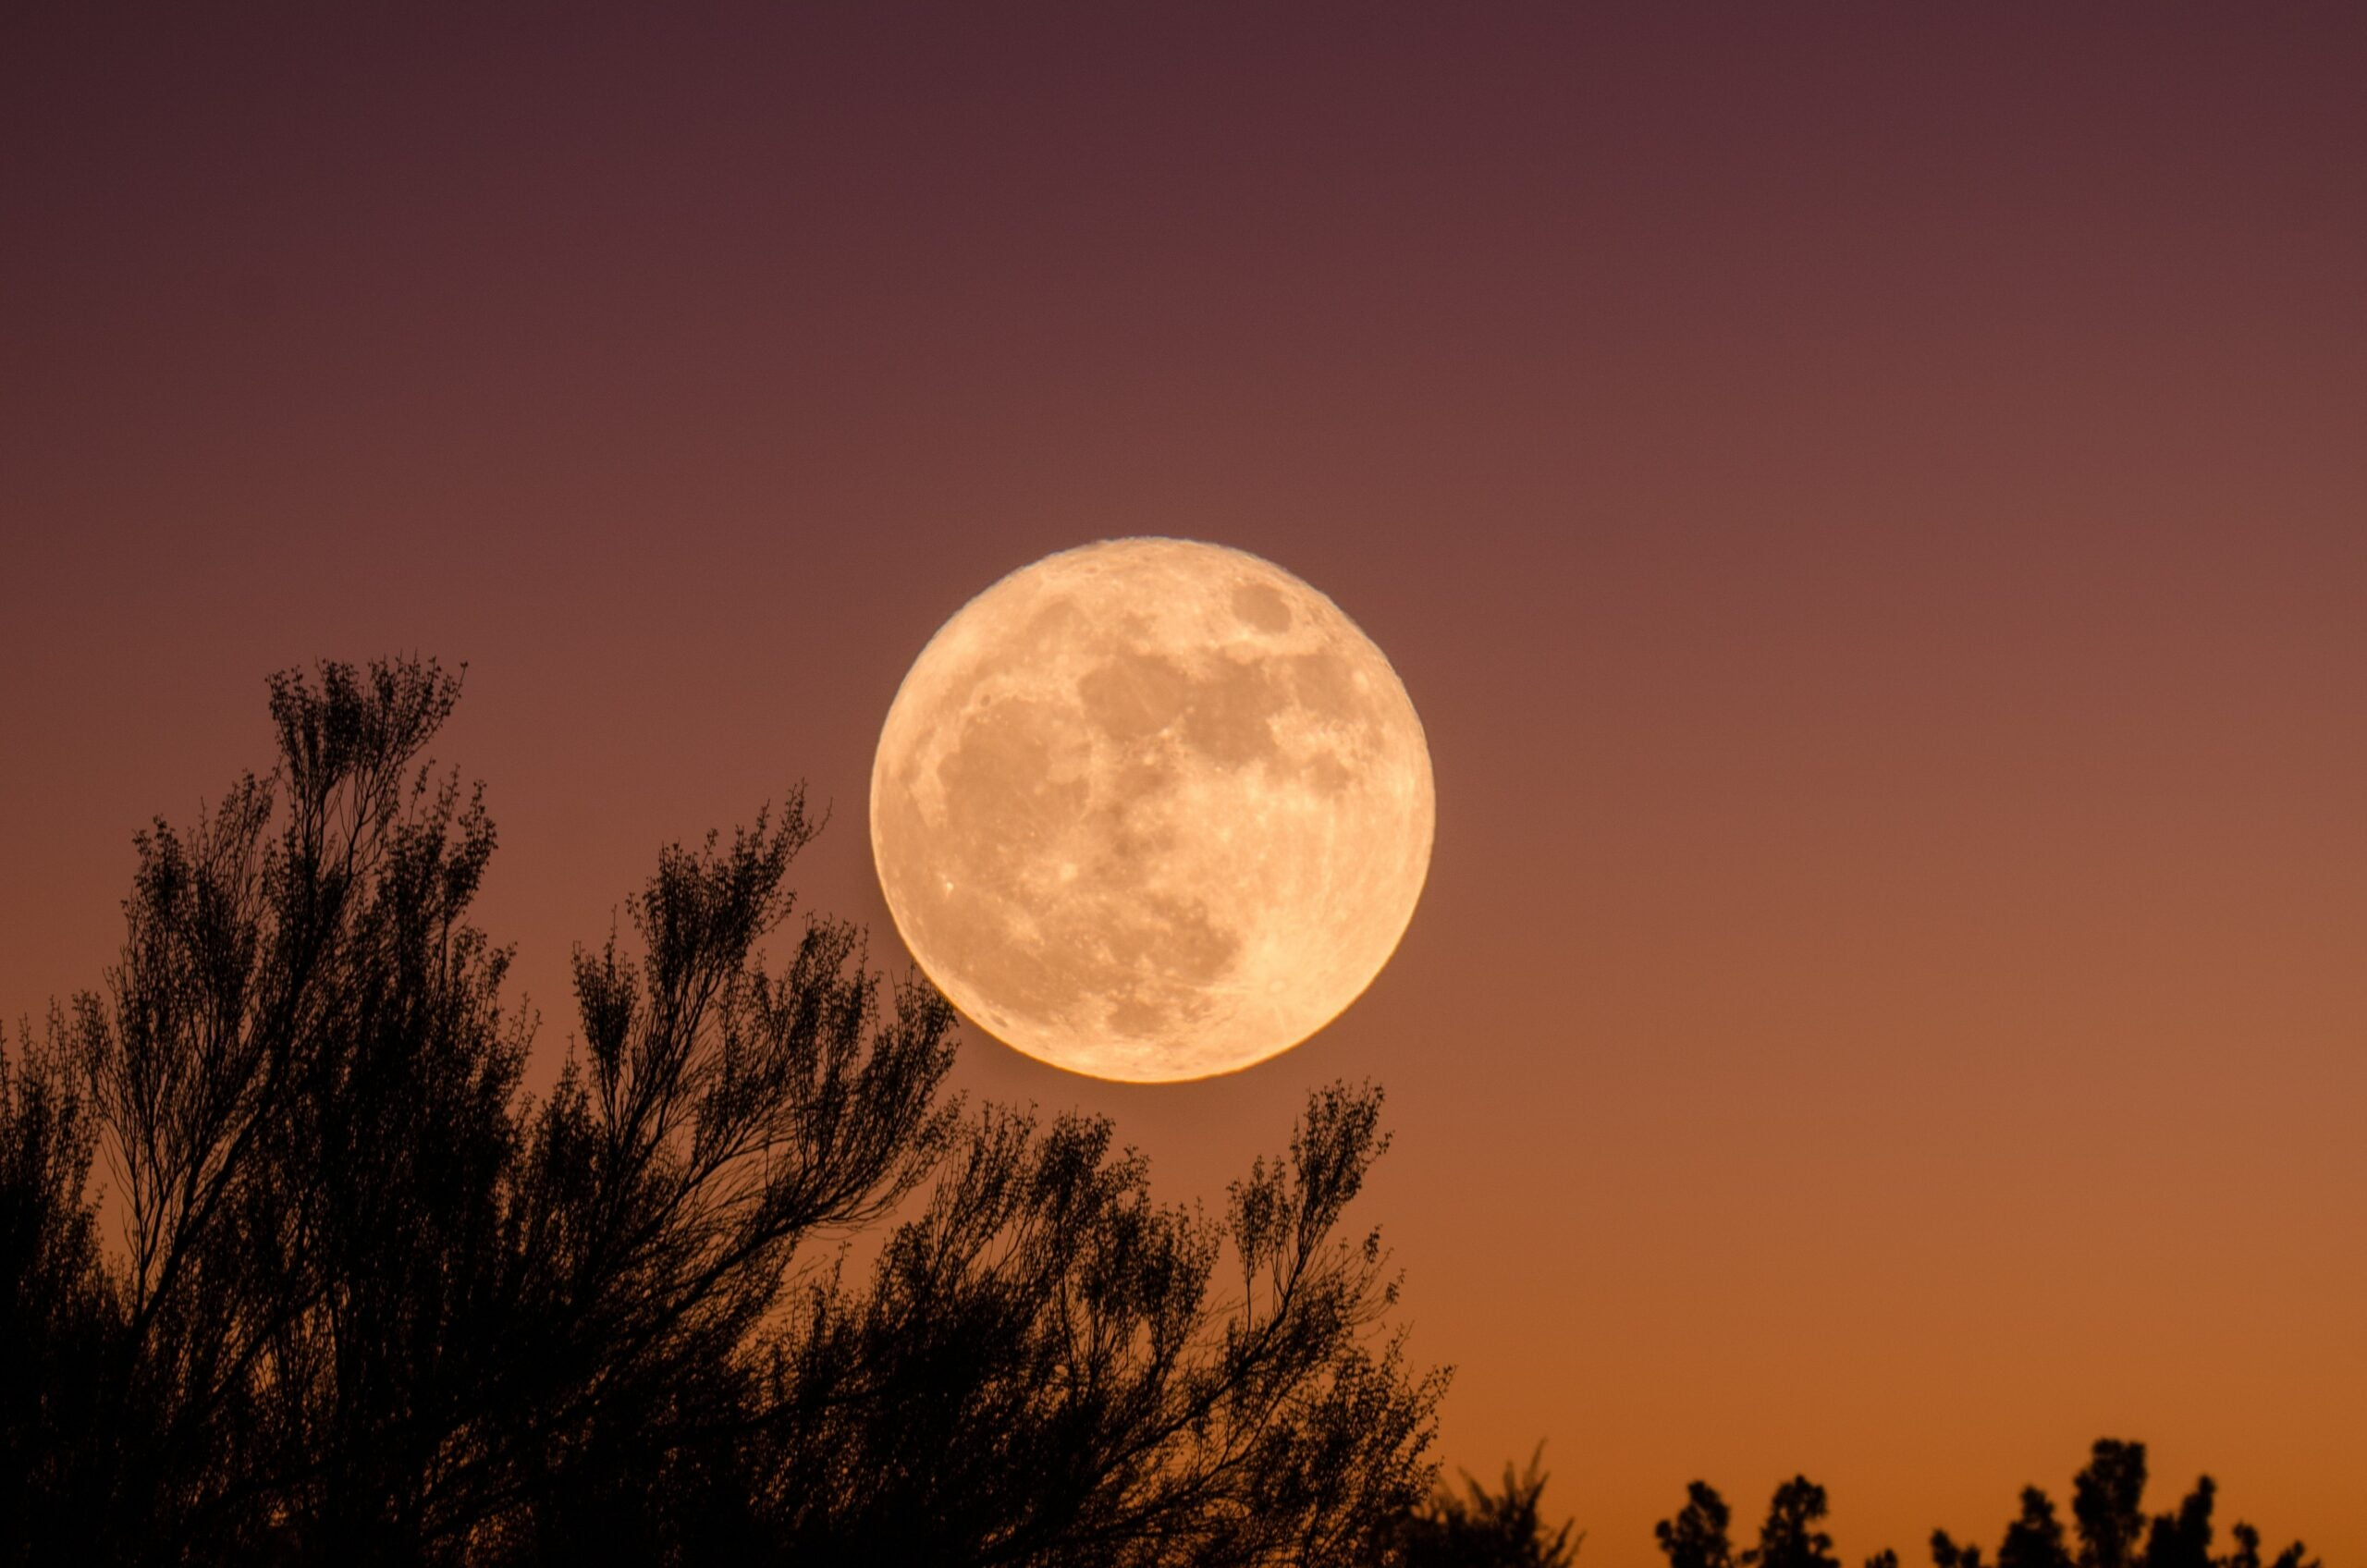 The Strawberry Moon, explained